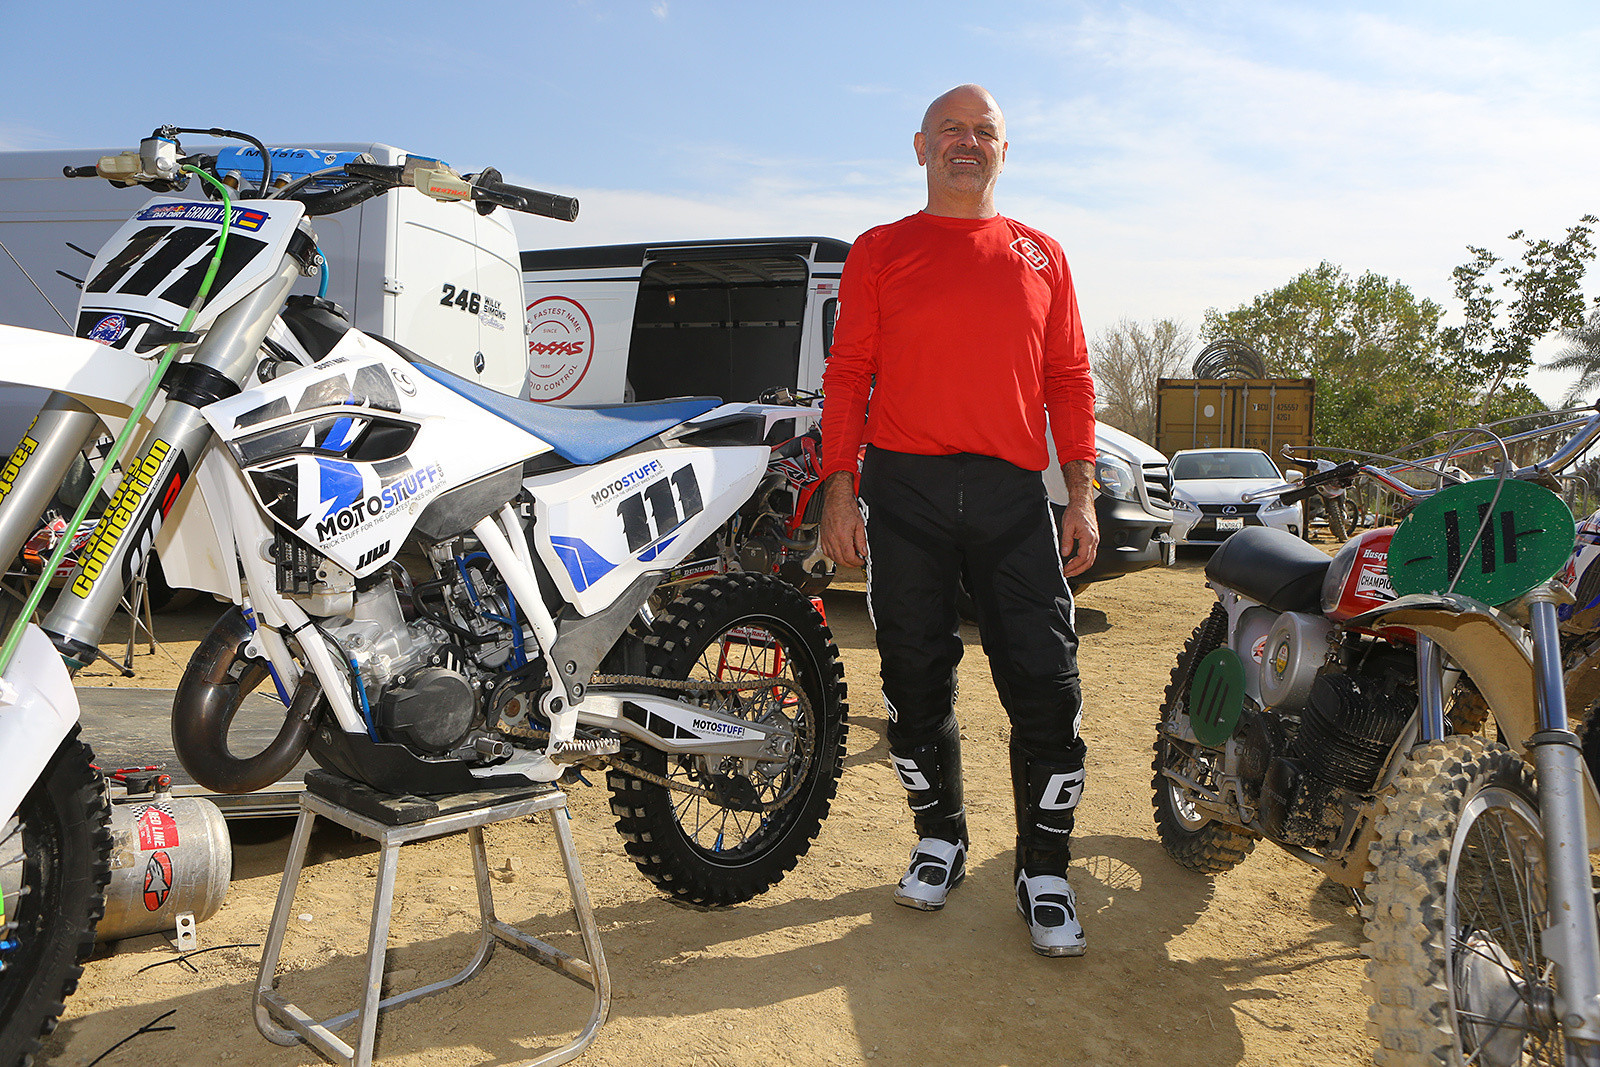 Scott Hart - Day In The Dirt Photo Gallery - Motocross Pictures - Vital MX